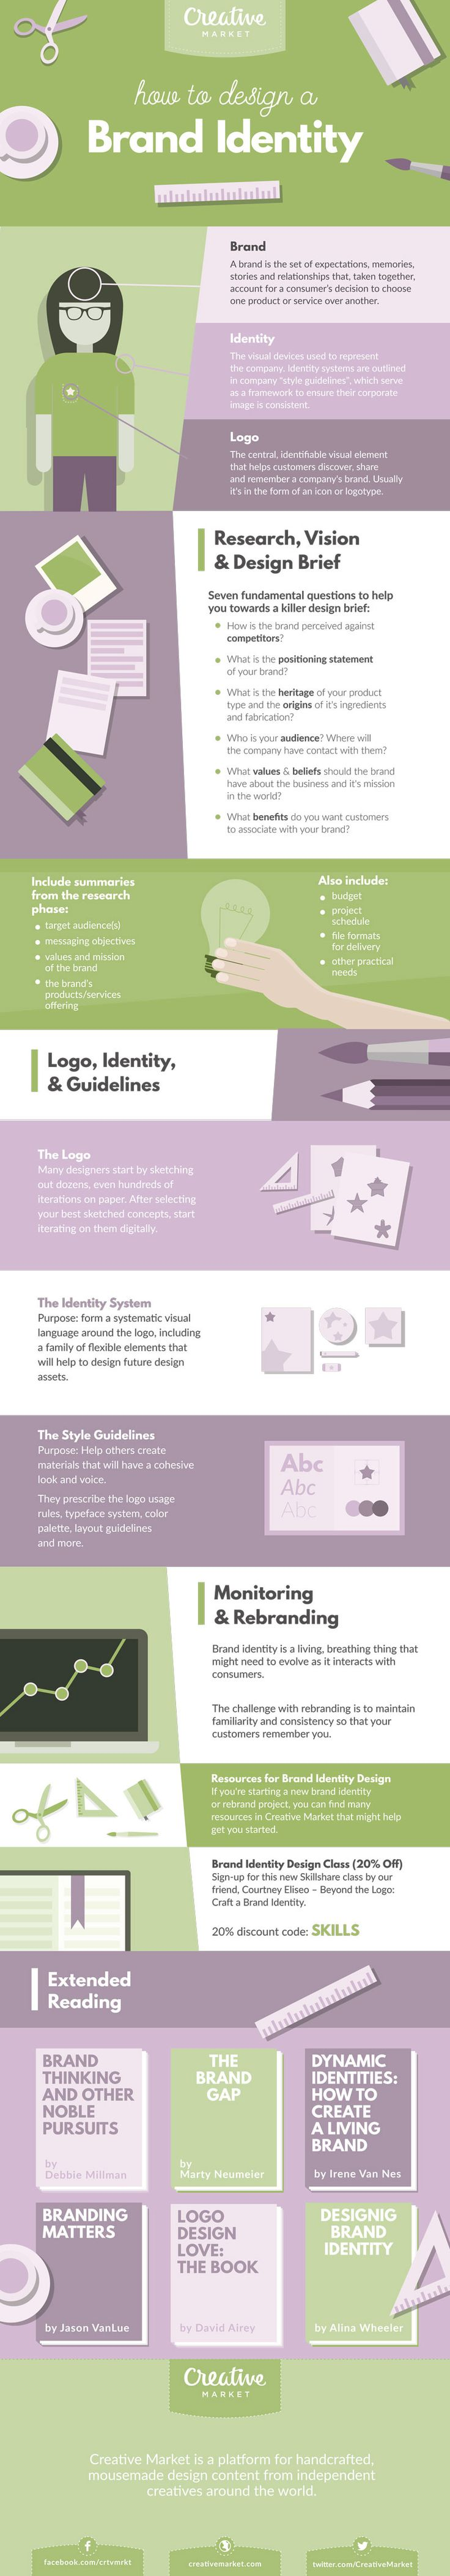 How To Design a Visually Strong Brand Identity (Infographic)